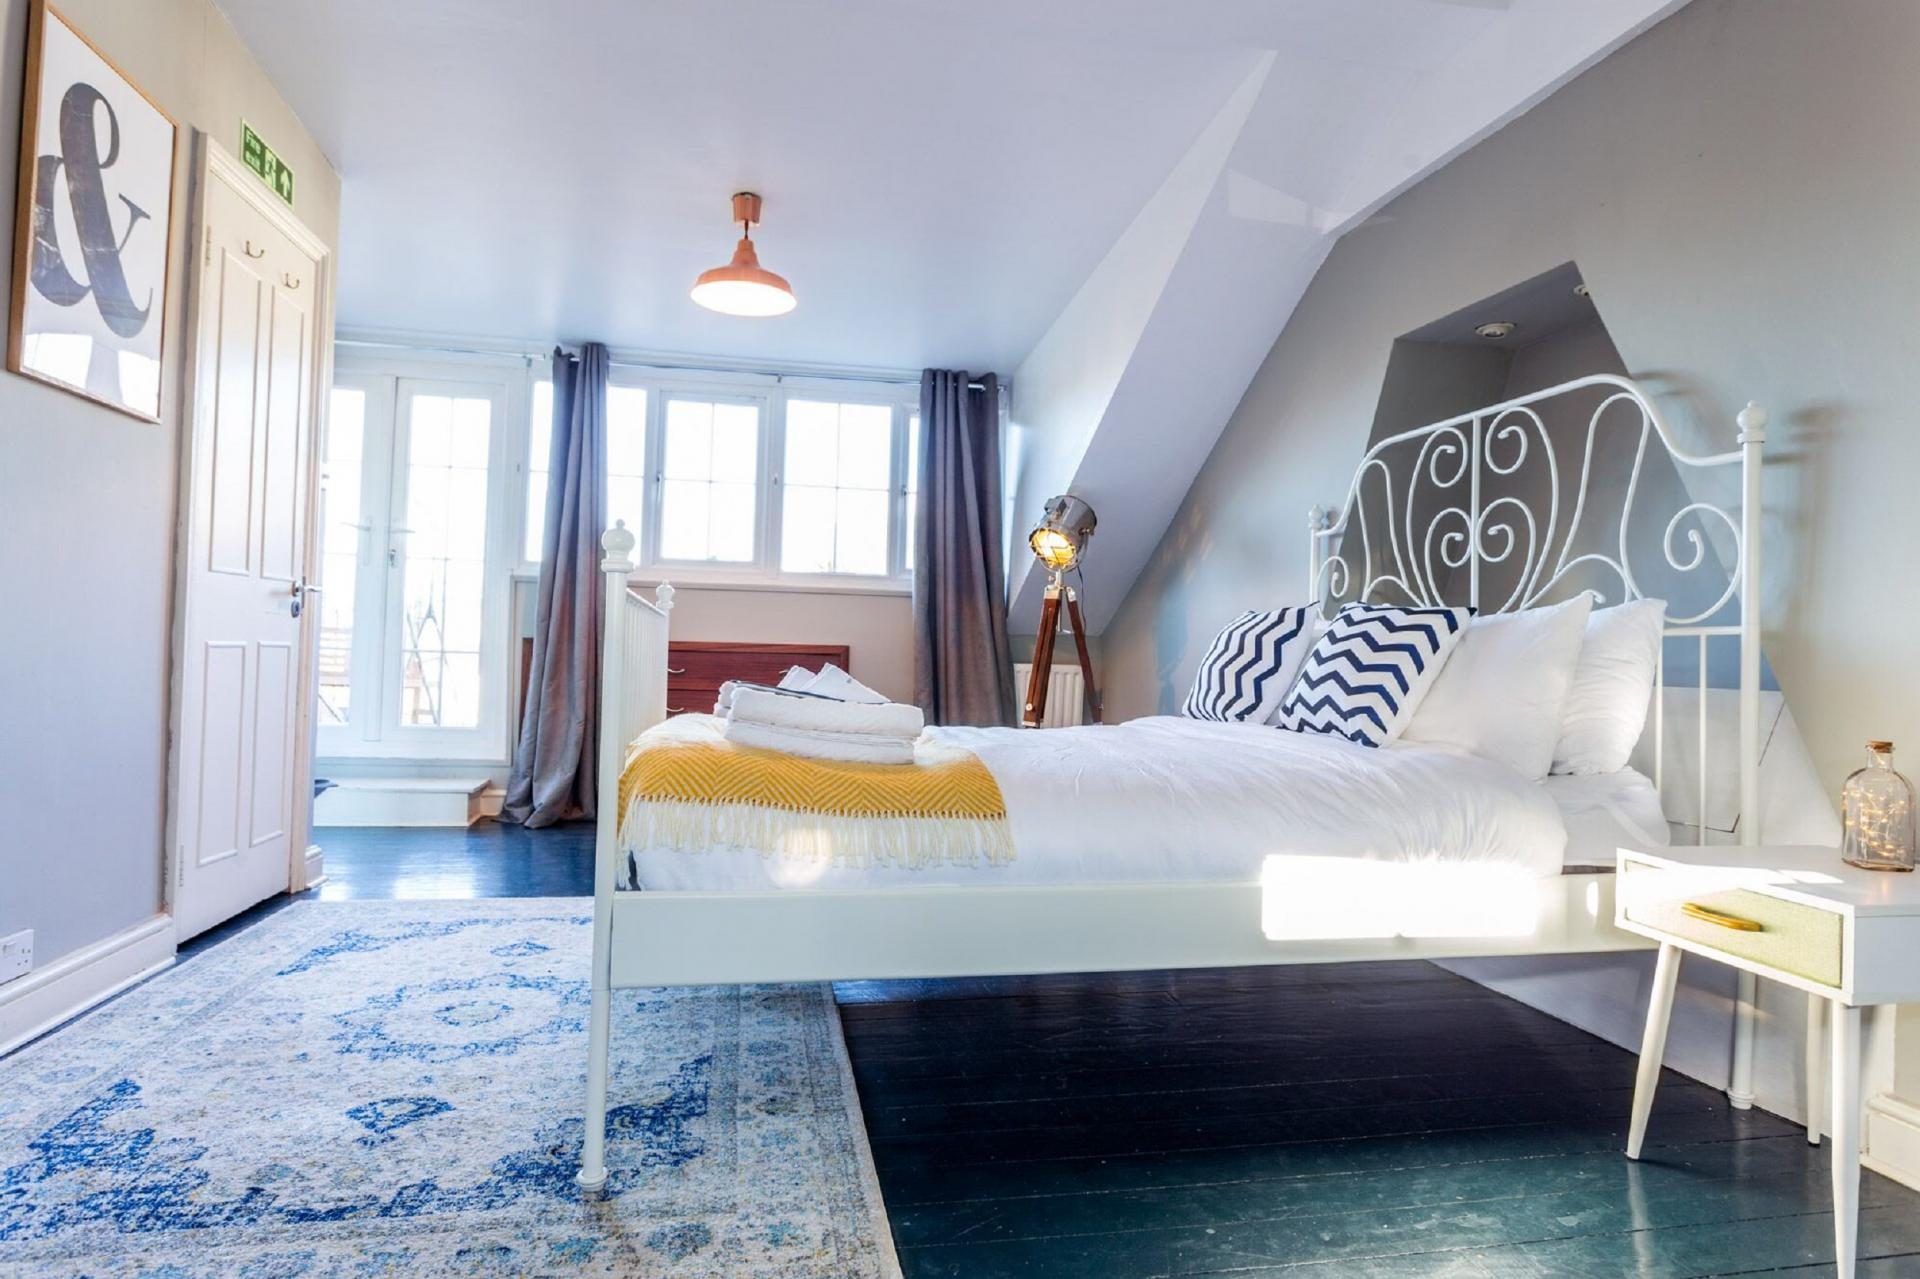 Bedroom at The River Cam Place, Centre, Cambridge - Citybase Apartments